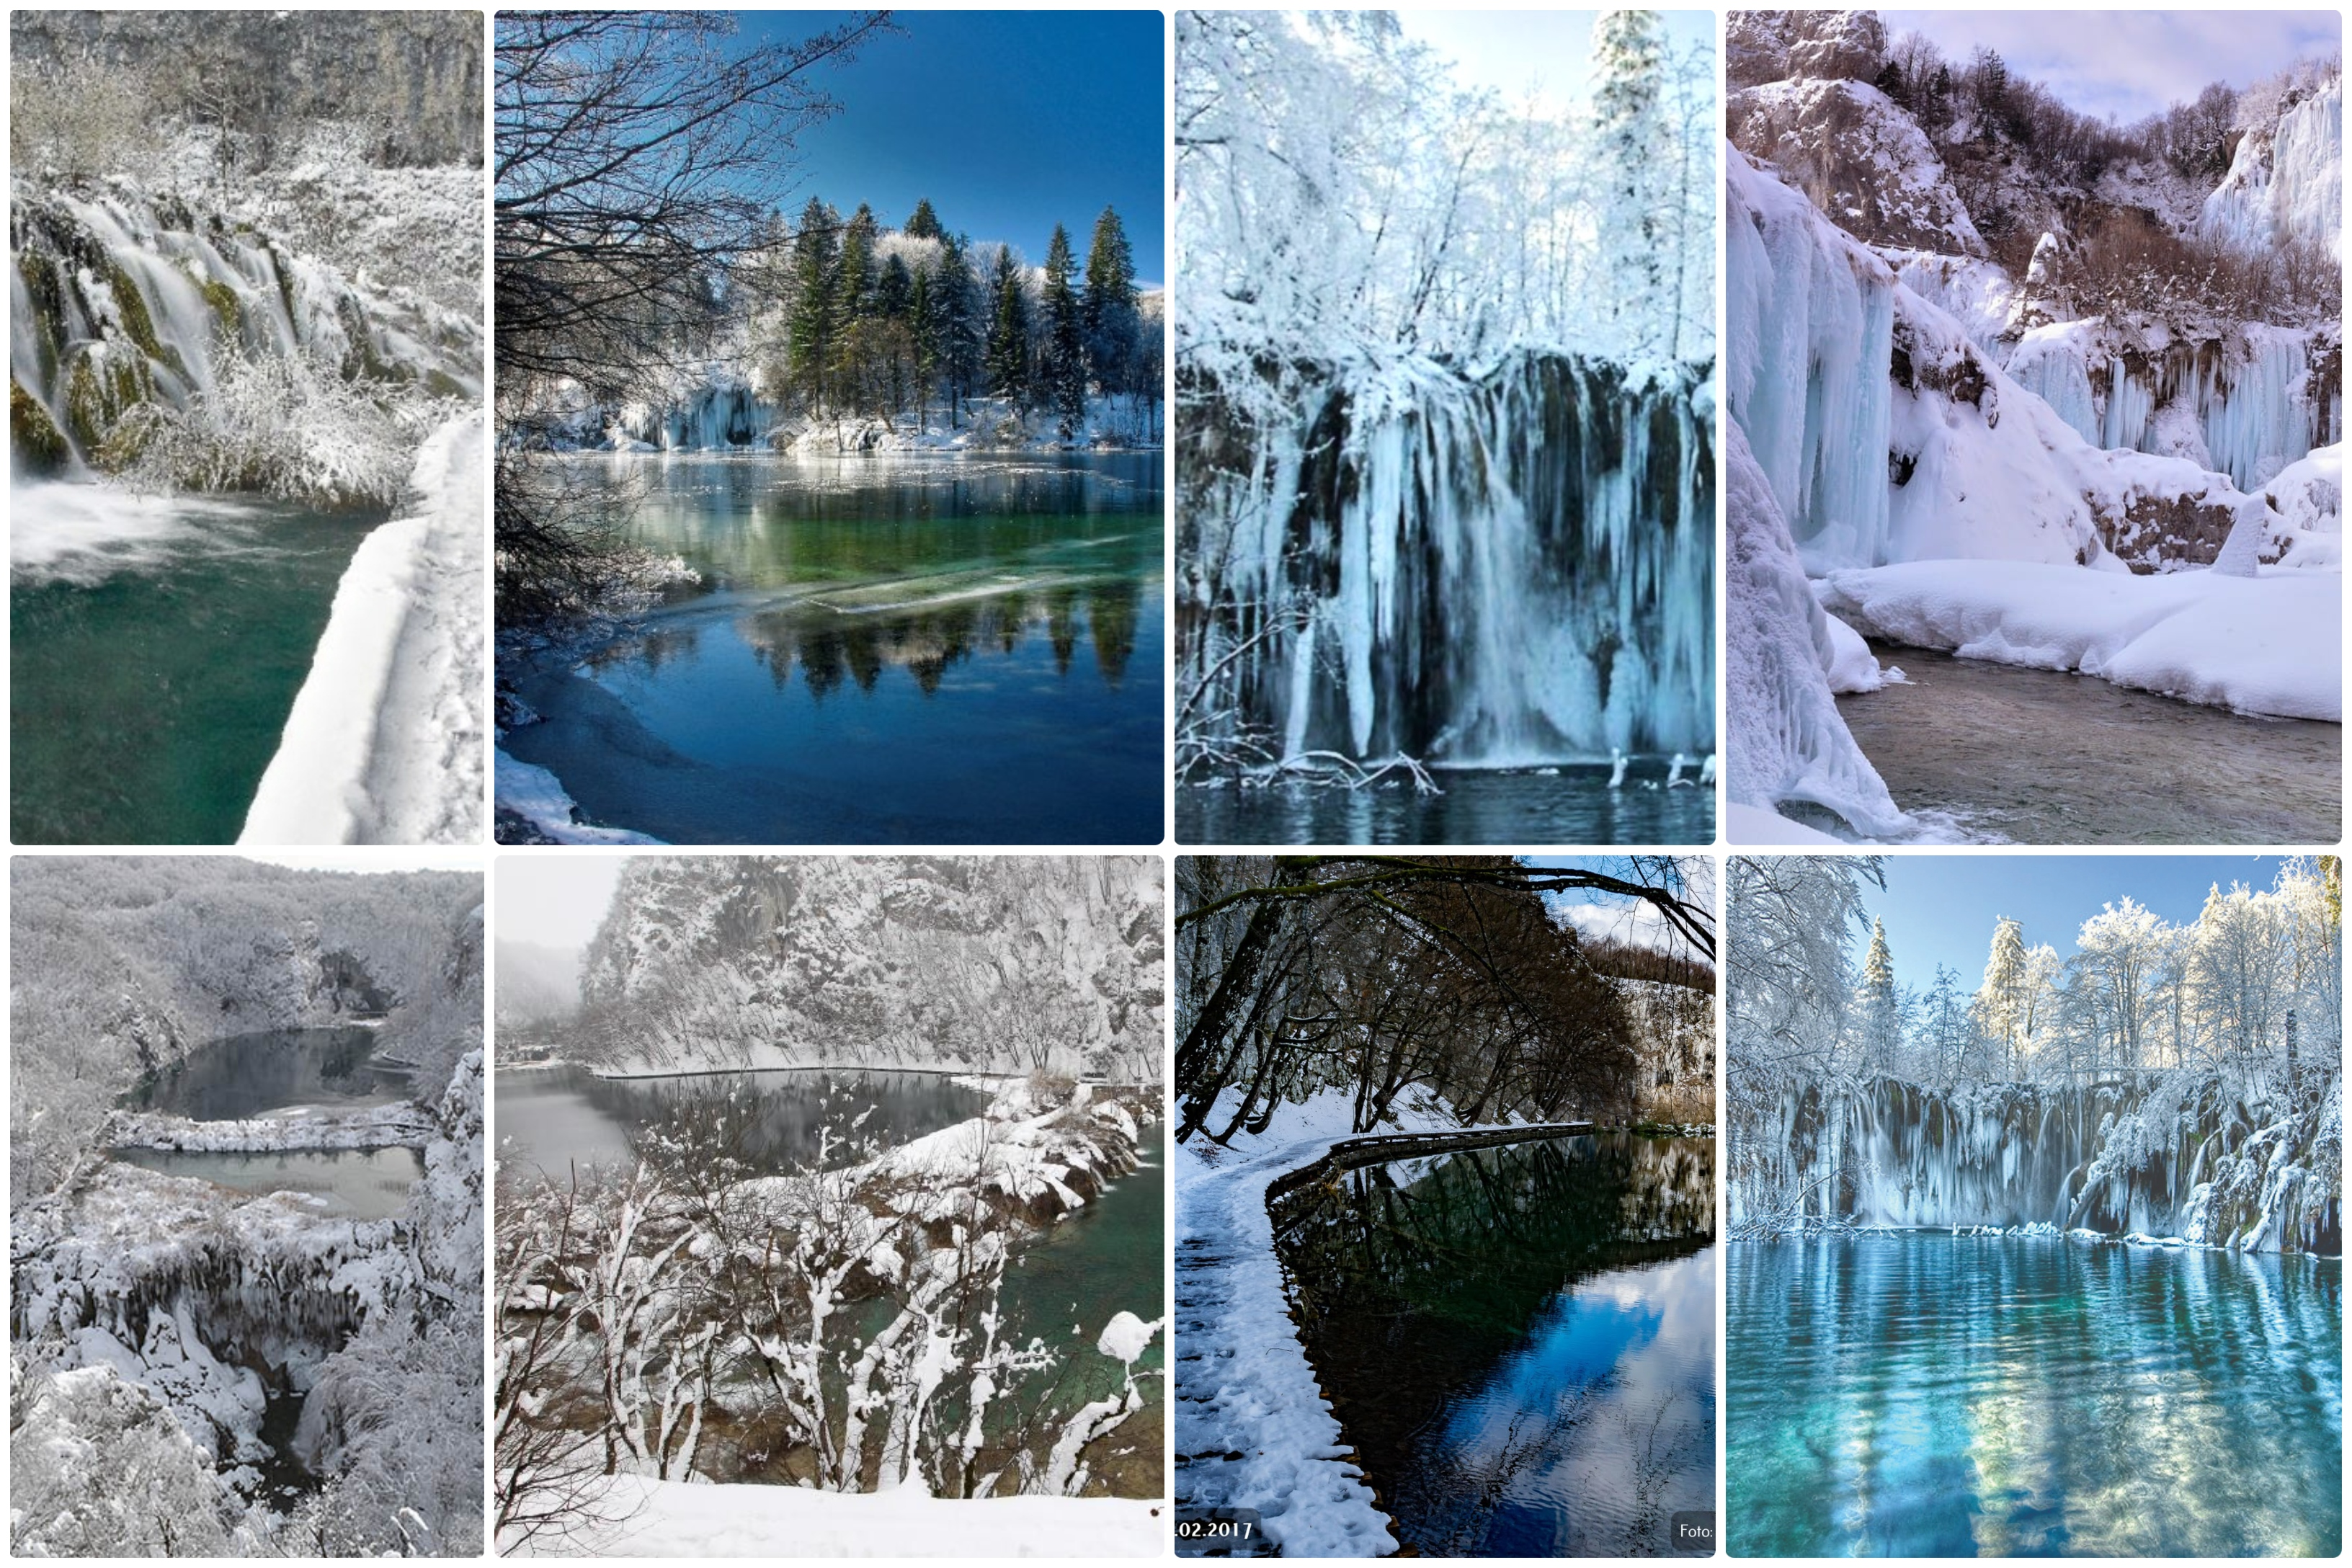 The Winter Wonderland Of Plitvice Lakes Amazing Natural Beauty